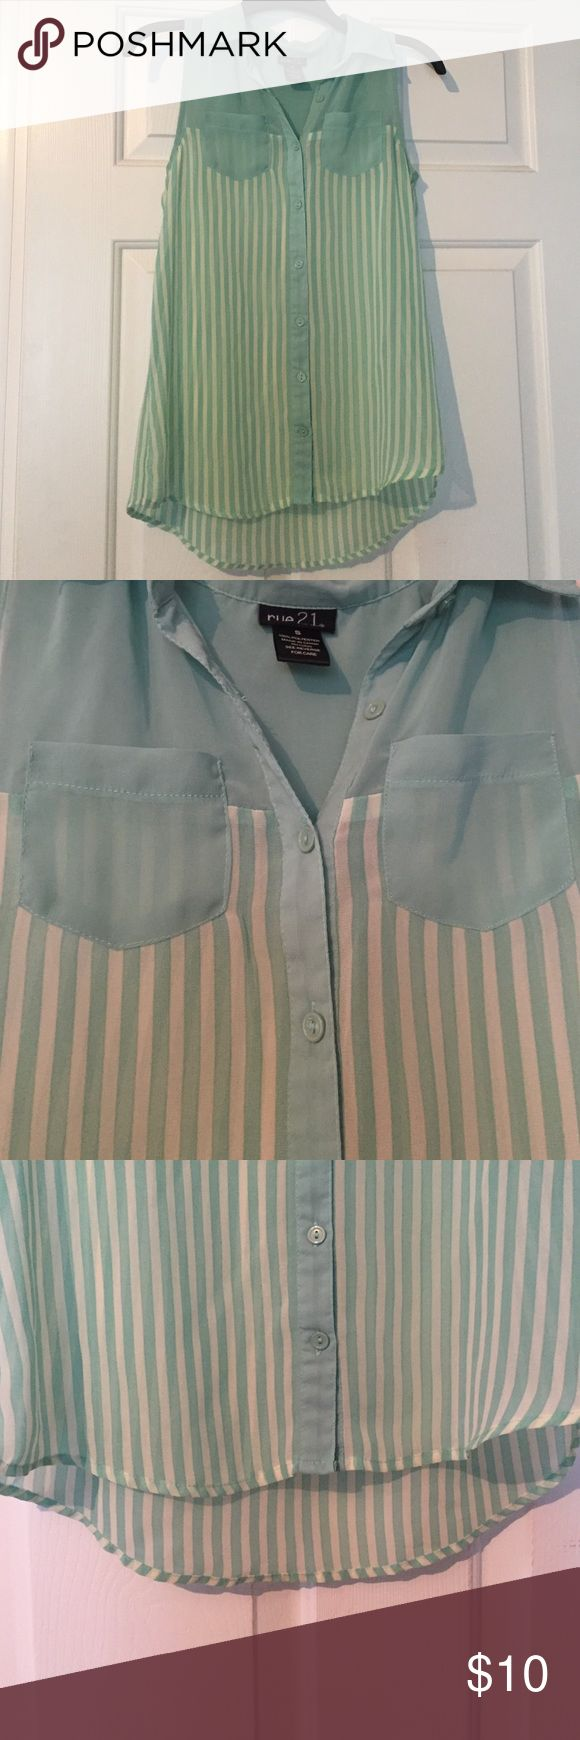 Beautiful Loose, Striped Vest A wonderful teal and cream striped vest with a Peter Pan collar and button down front. Rue 21 Tops